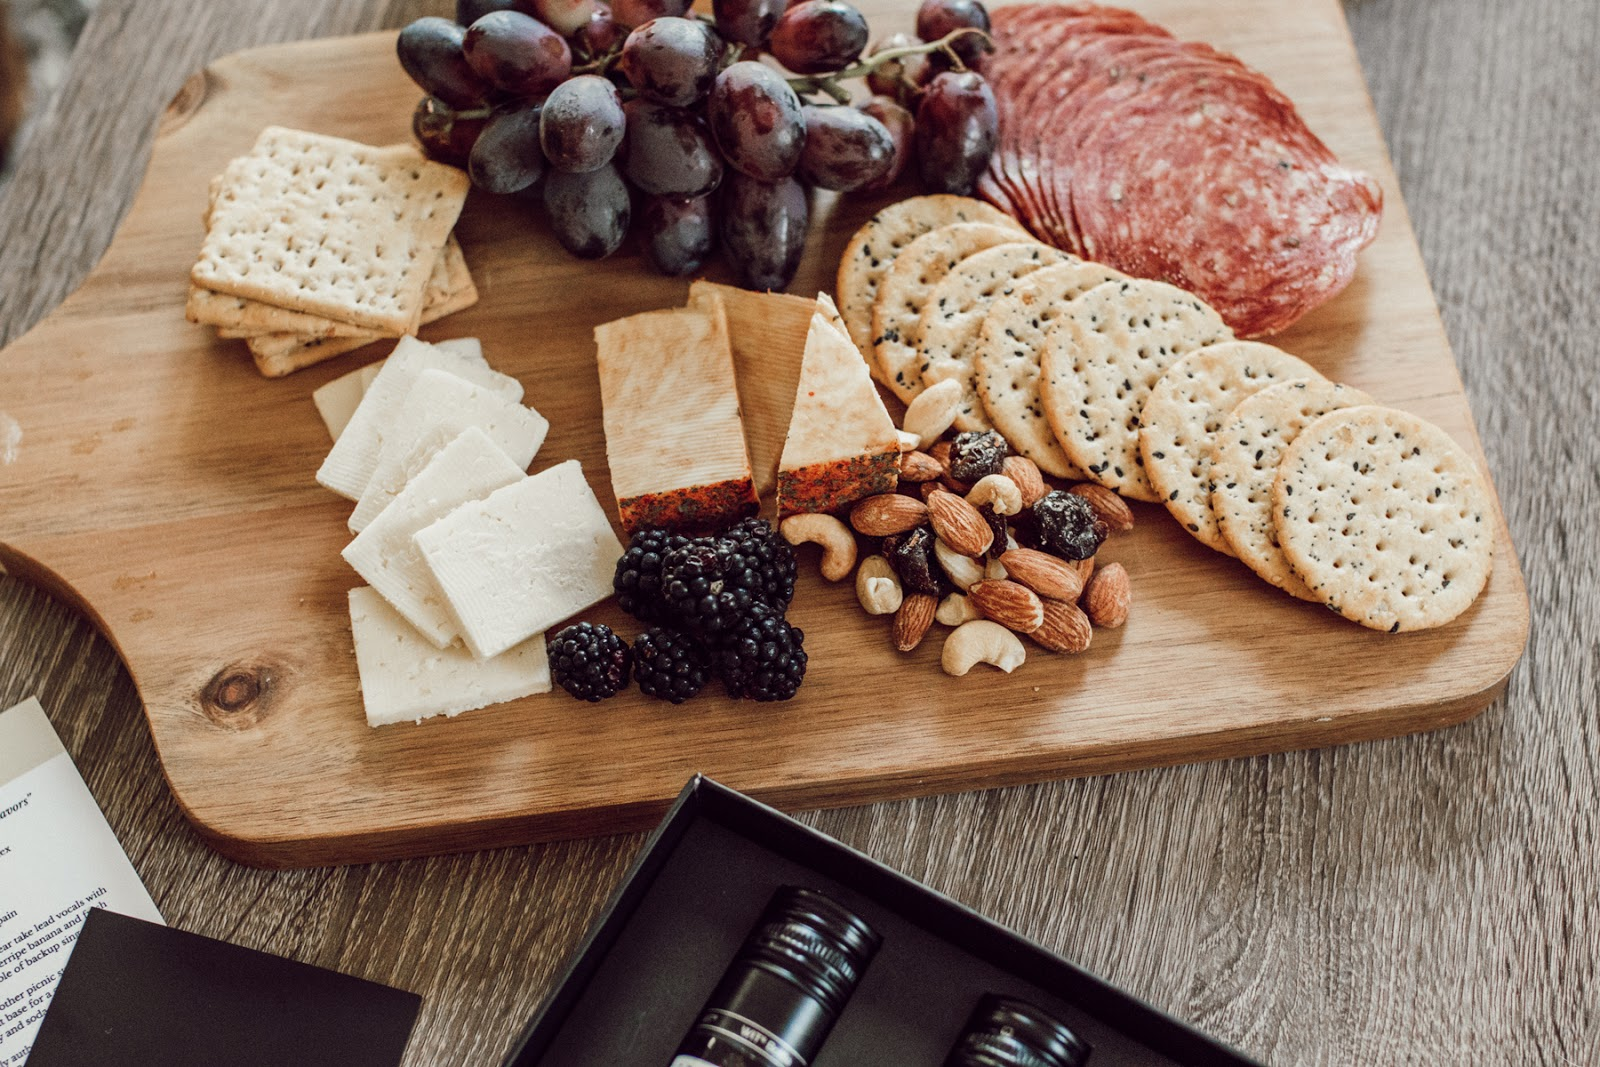 charcuterie board for some wine tasting